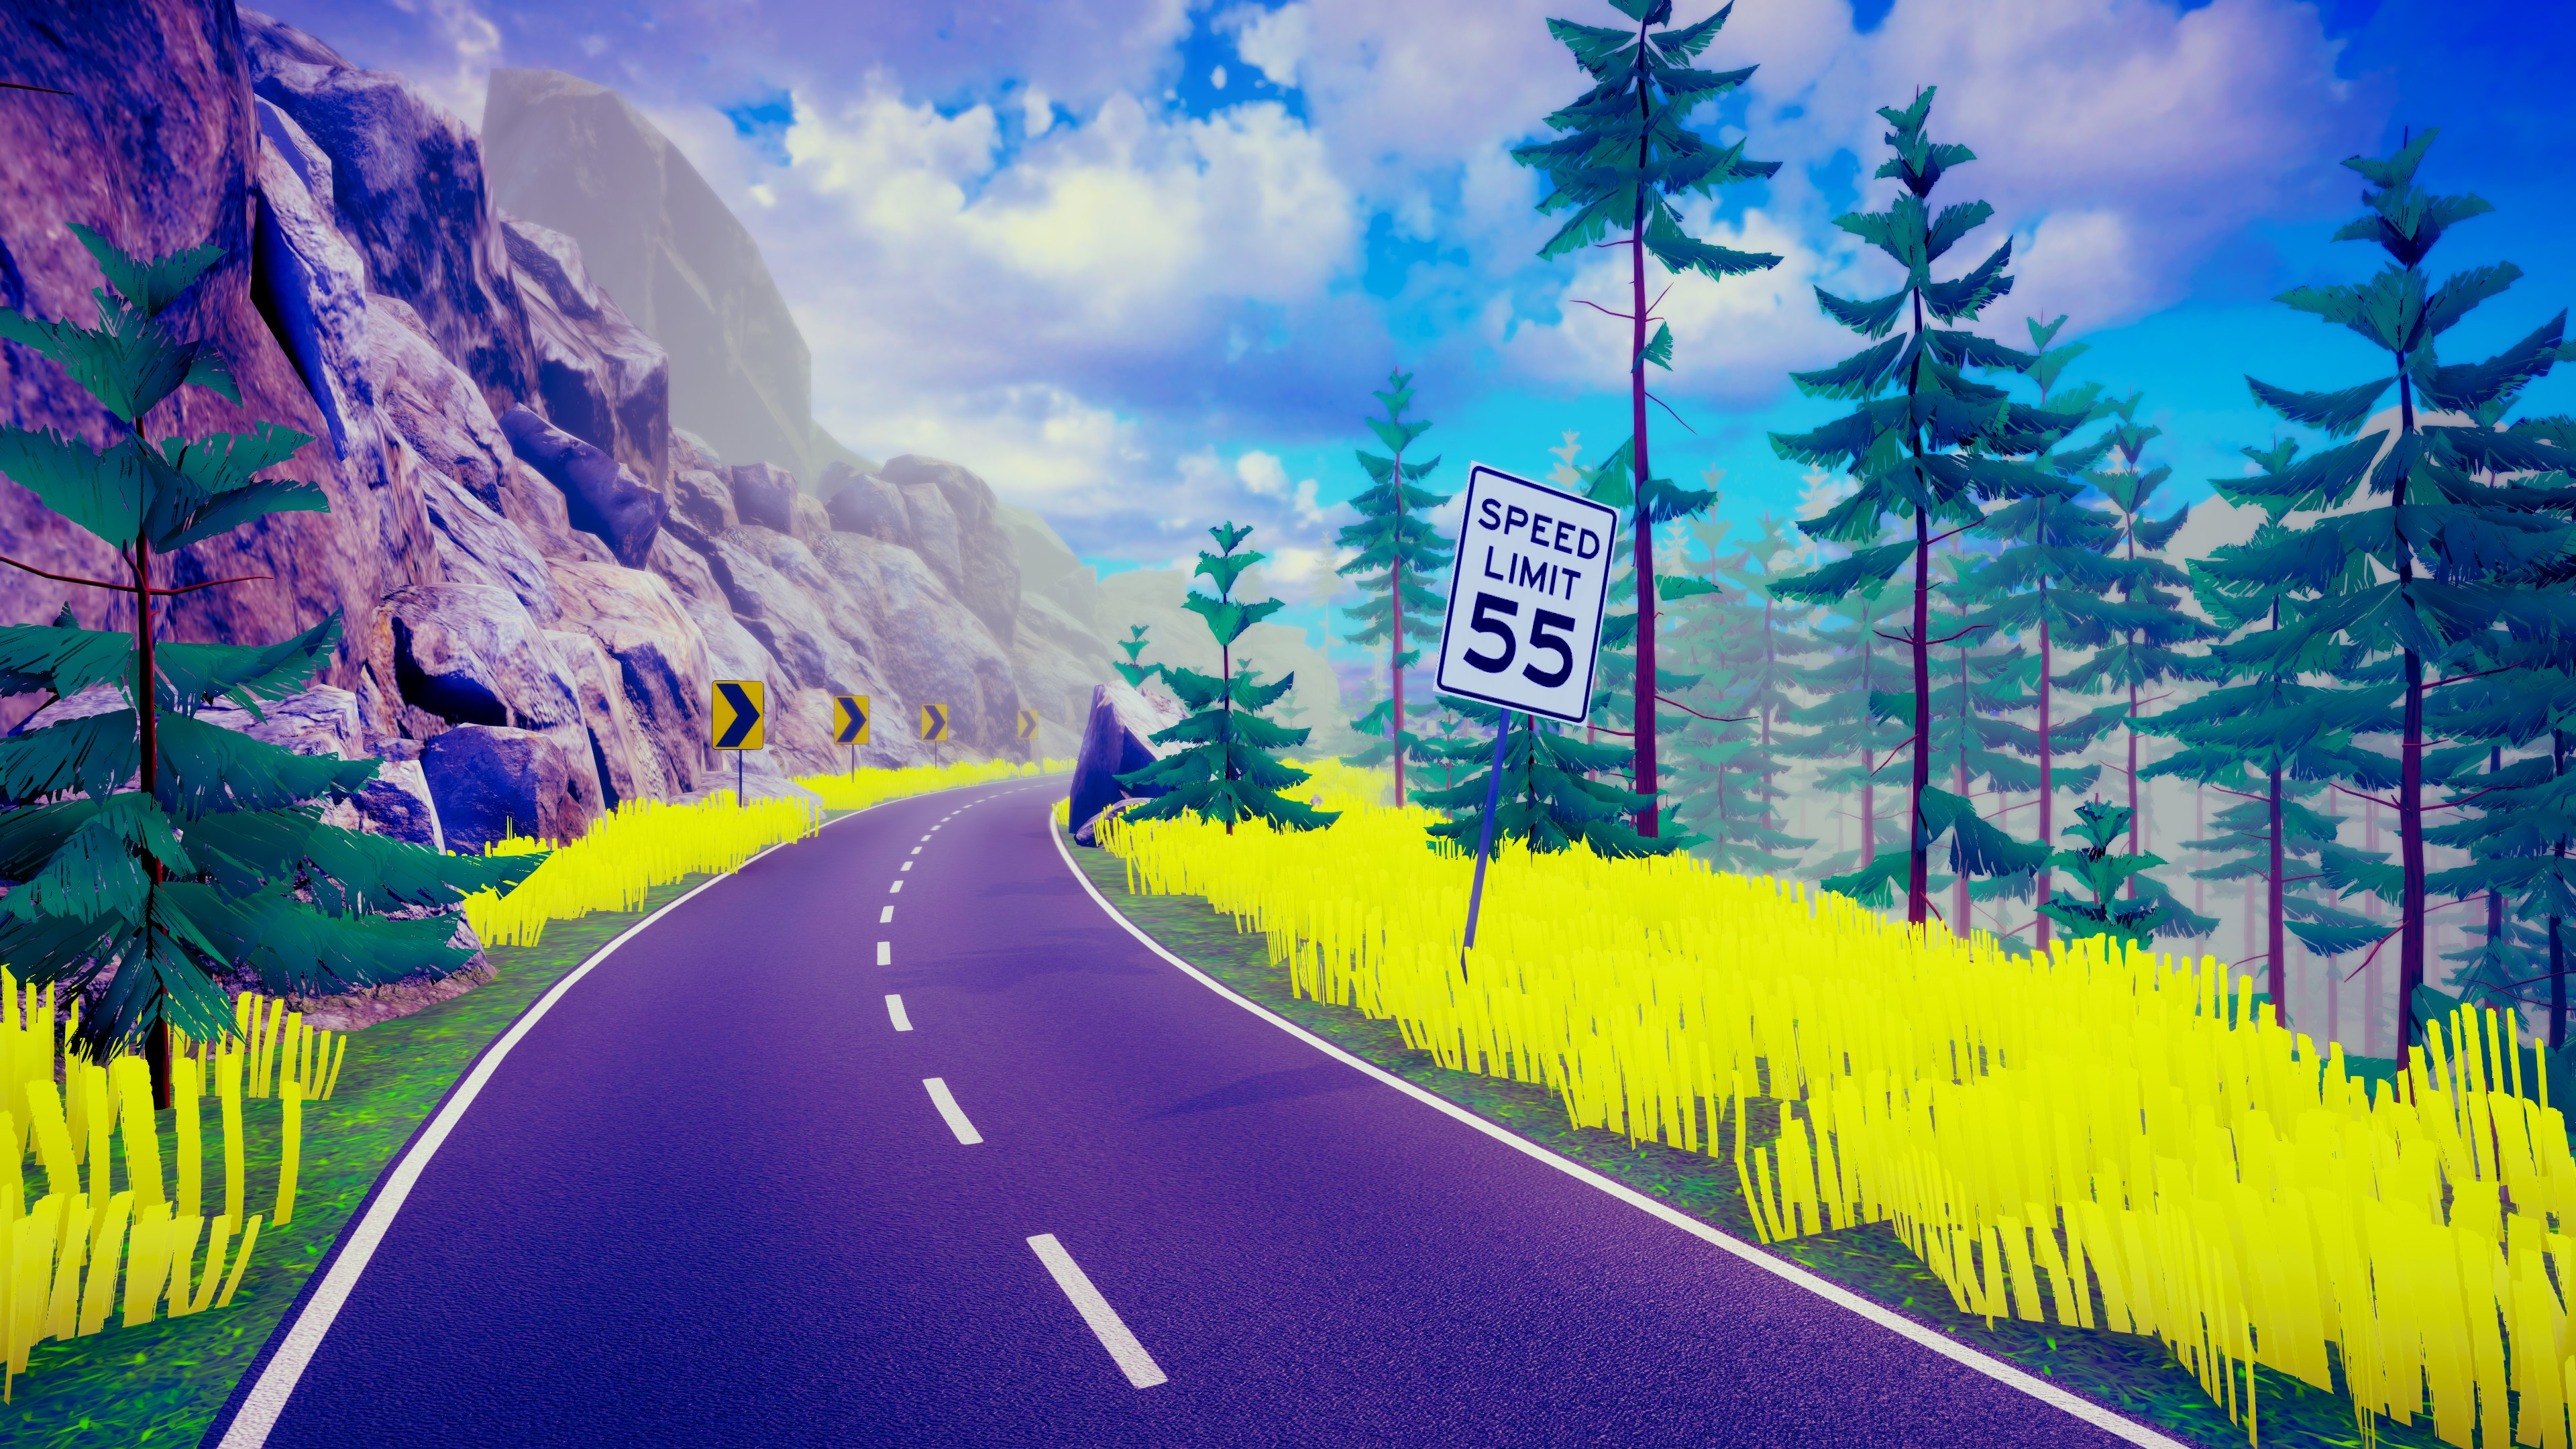 Hike. A two-lane highway through the mountains with a speed limit sign specifying 55 miles per hour